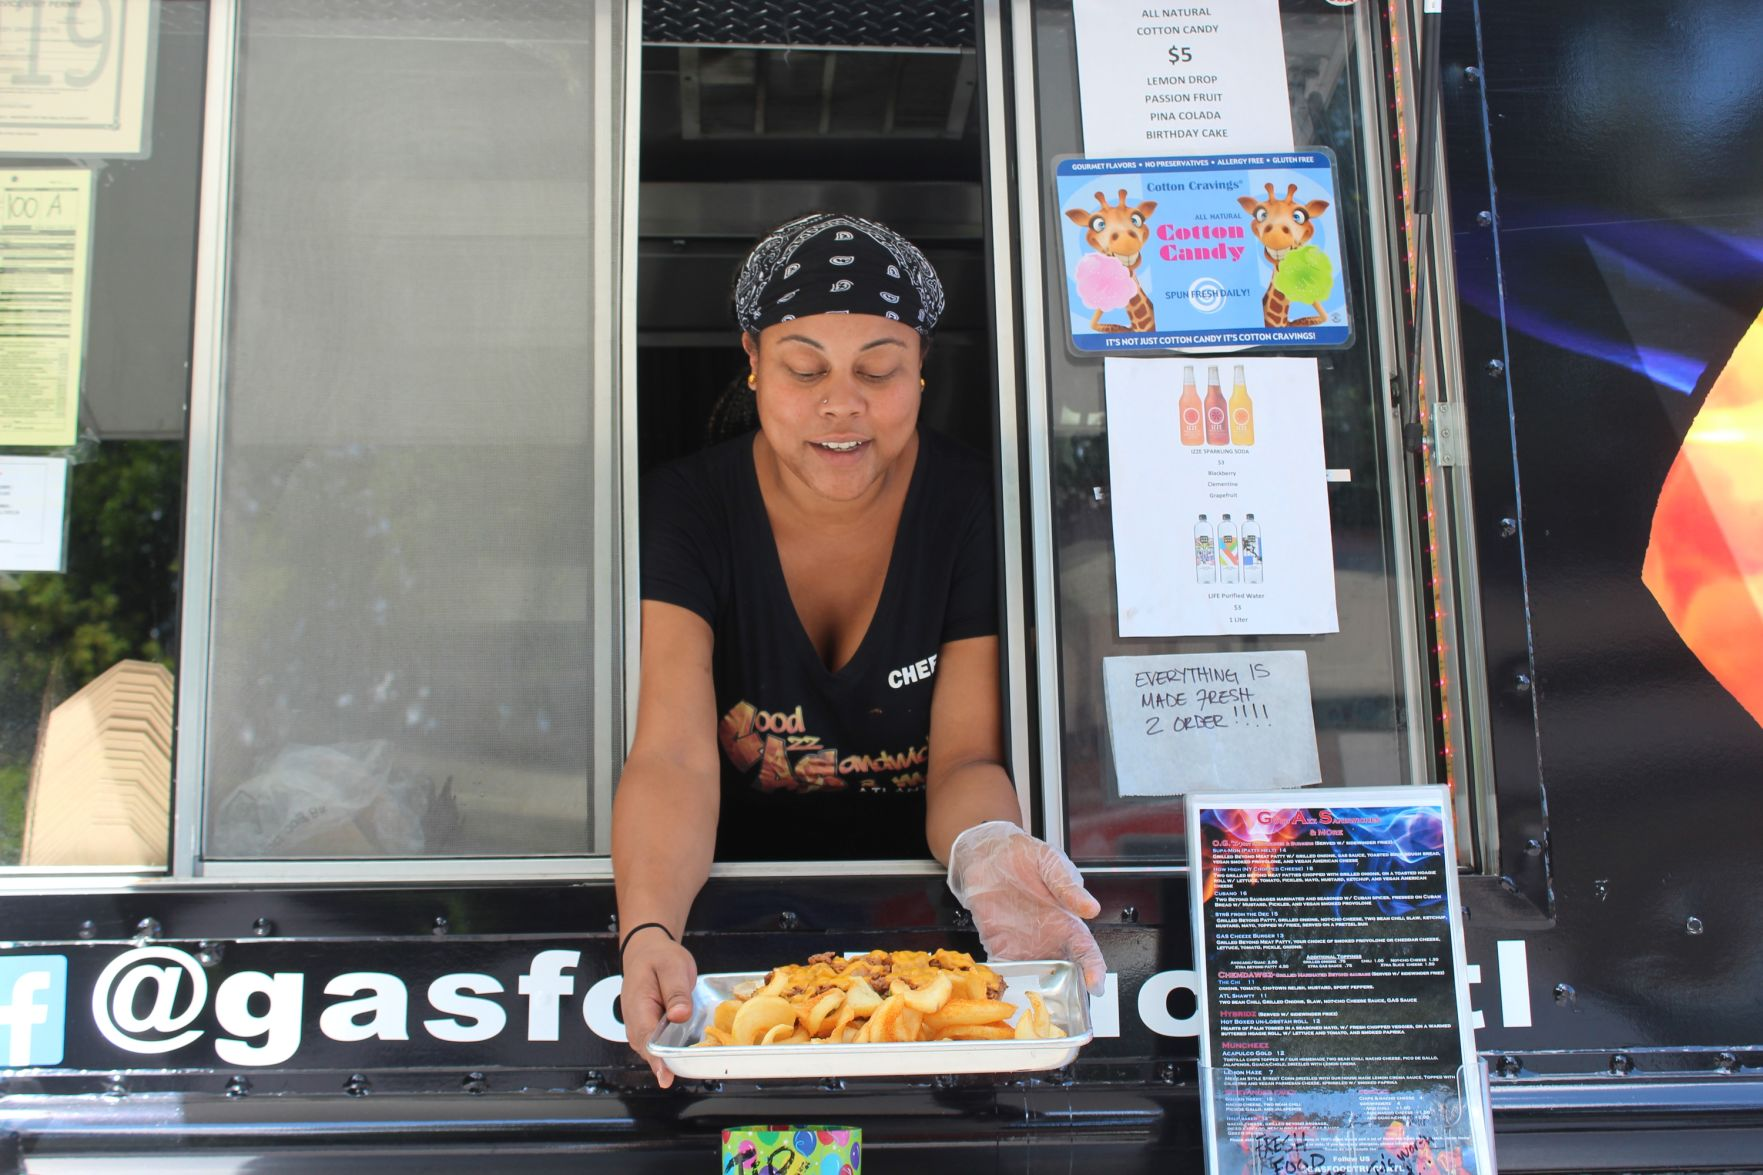 This New Food Truck In Decatur Is Serving Up The Vegan Version Of Classic Sandwiches Dekalb Neighbor Mdjonline Com